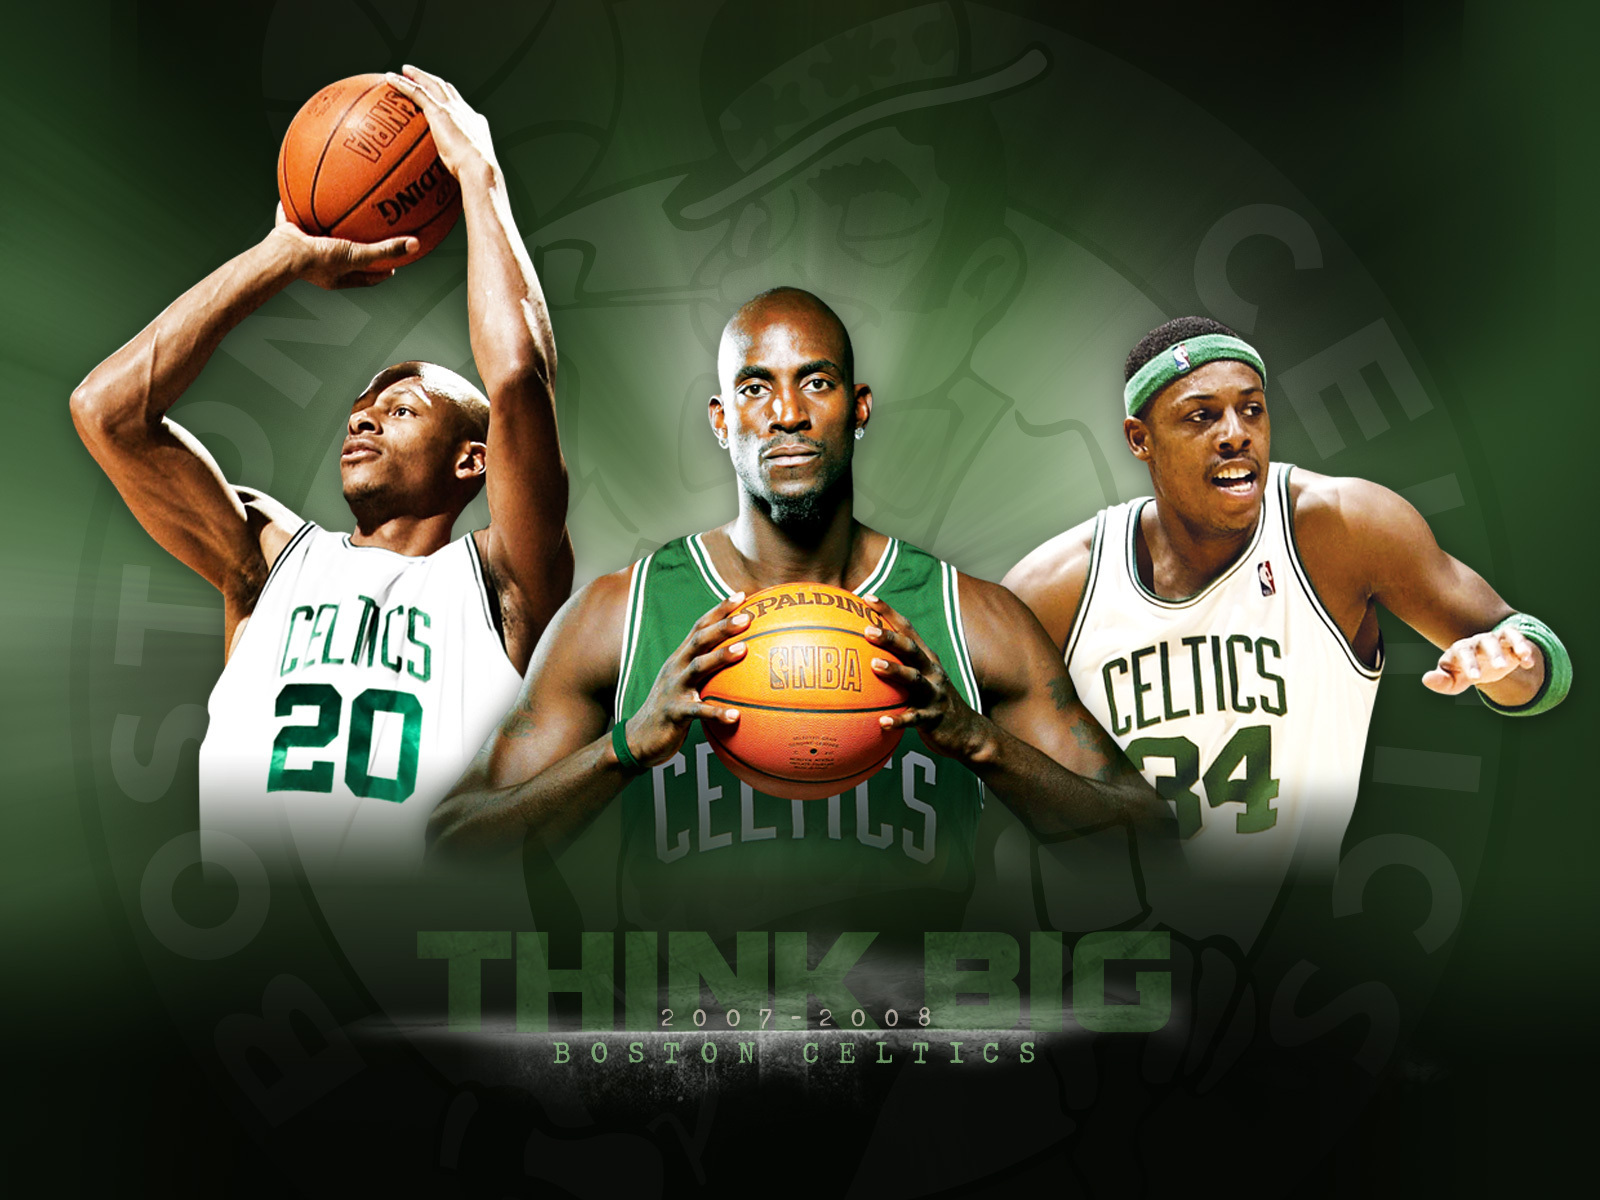 boston celtic - Boston Celtics Wallpaper (4568138) - Fanpop